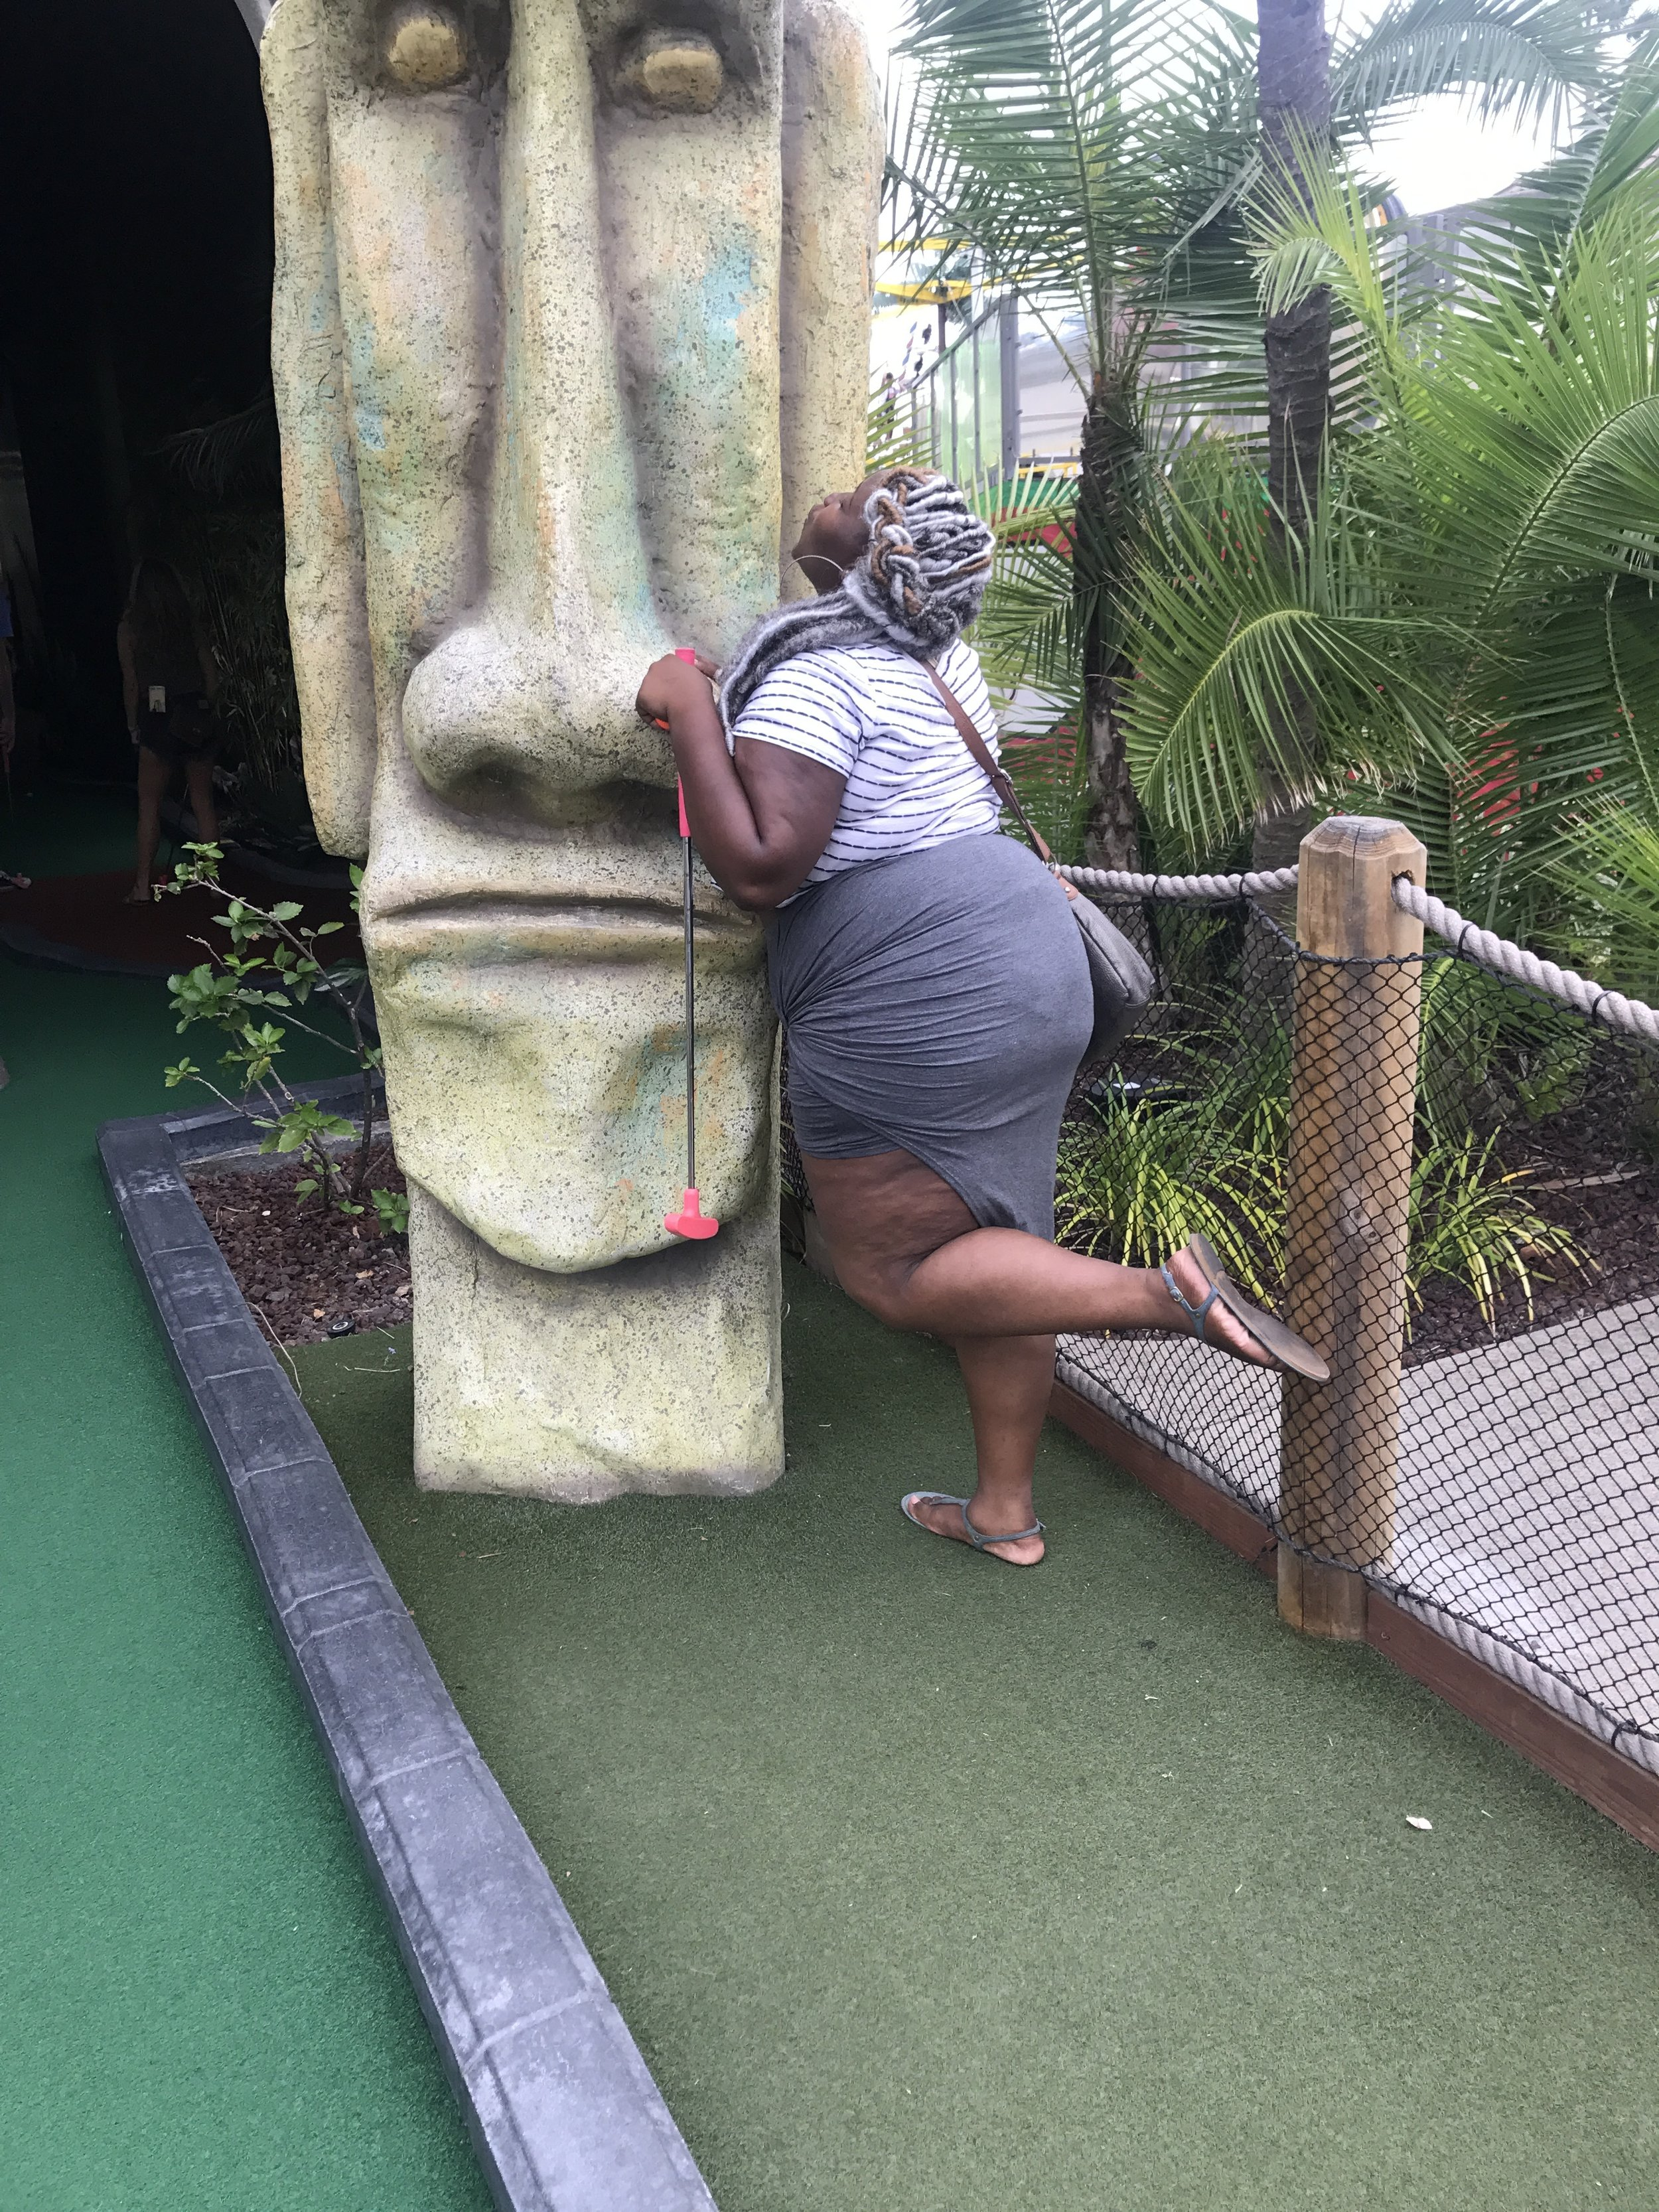 Mini golf (I'm still learning how to play to have fun and not to play to win lol)